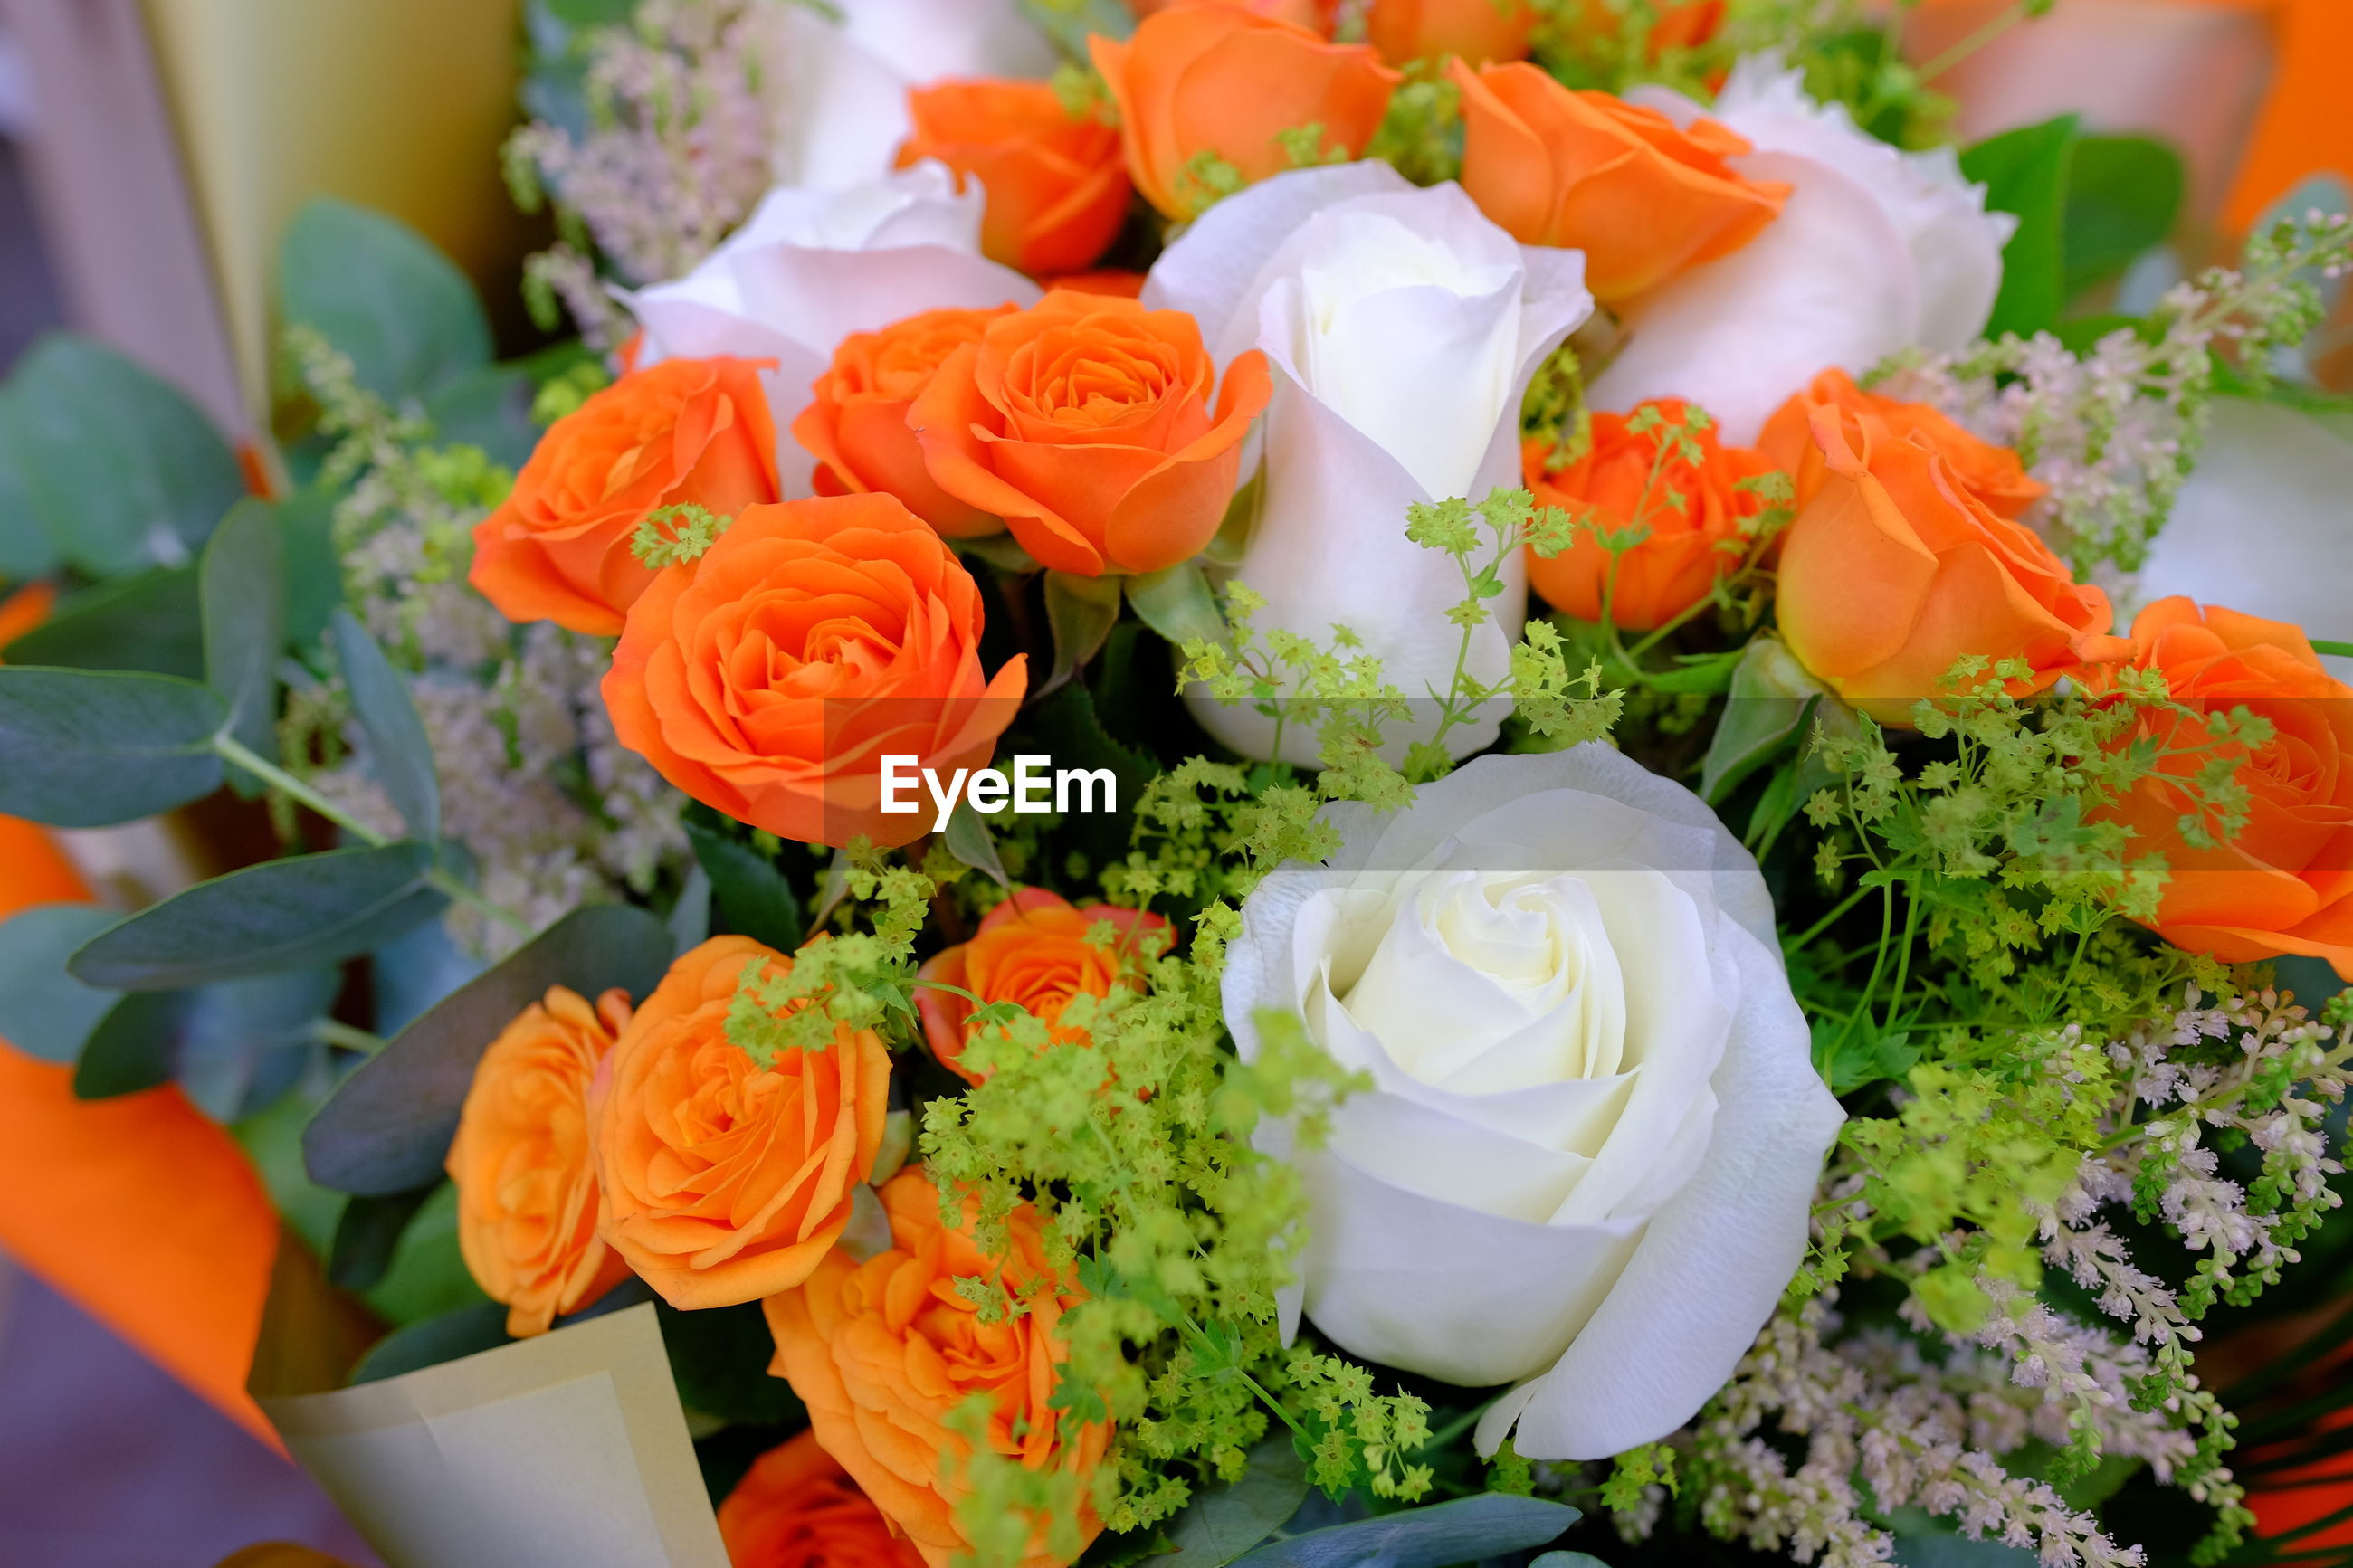 HIGH ANGLE VIEW OF ROSES ON BOUQUET OF PLANT